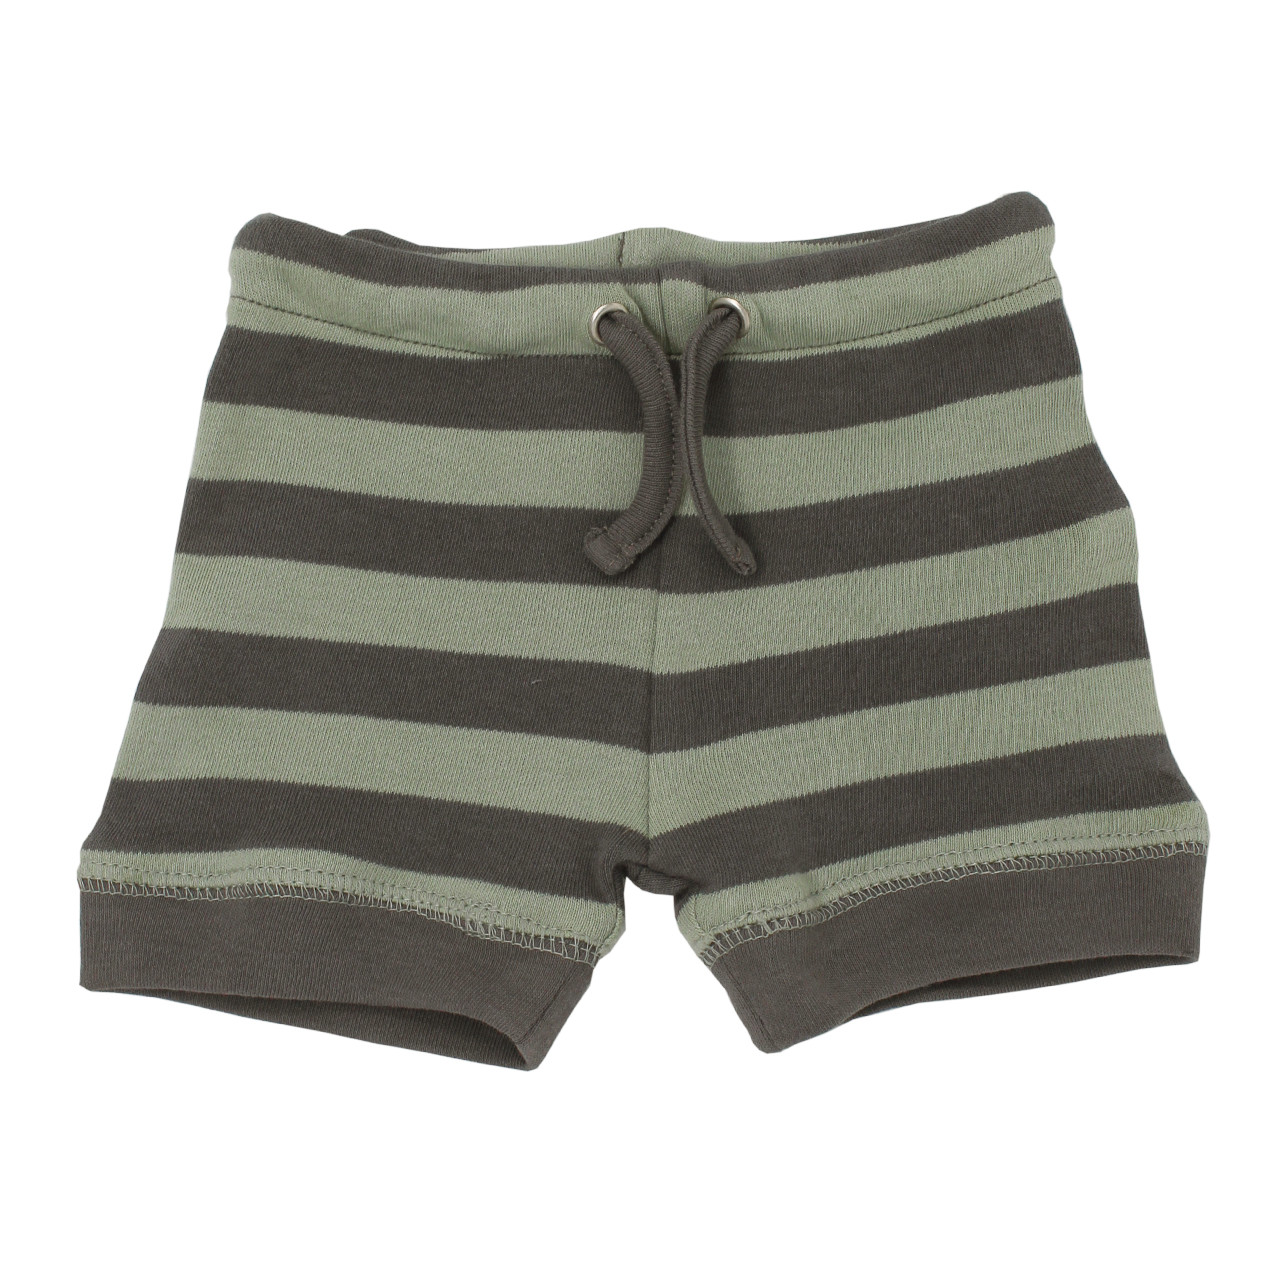 Organic Bike Shorts in Gray/Seafoam Stripe, Flat